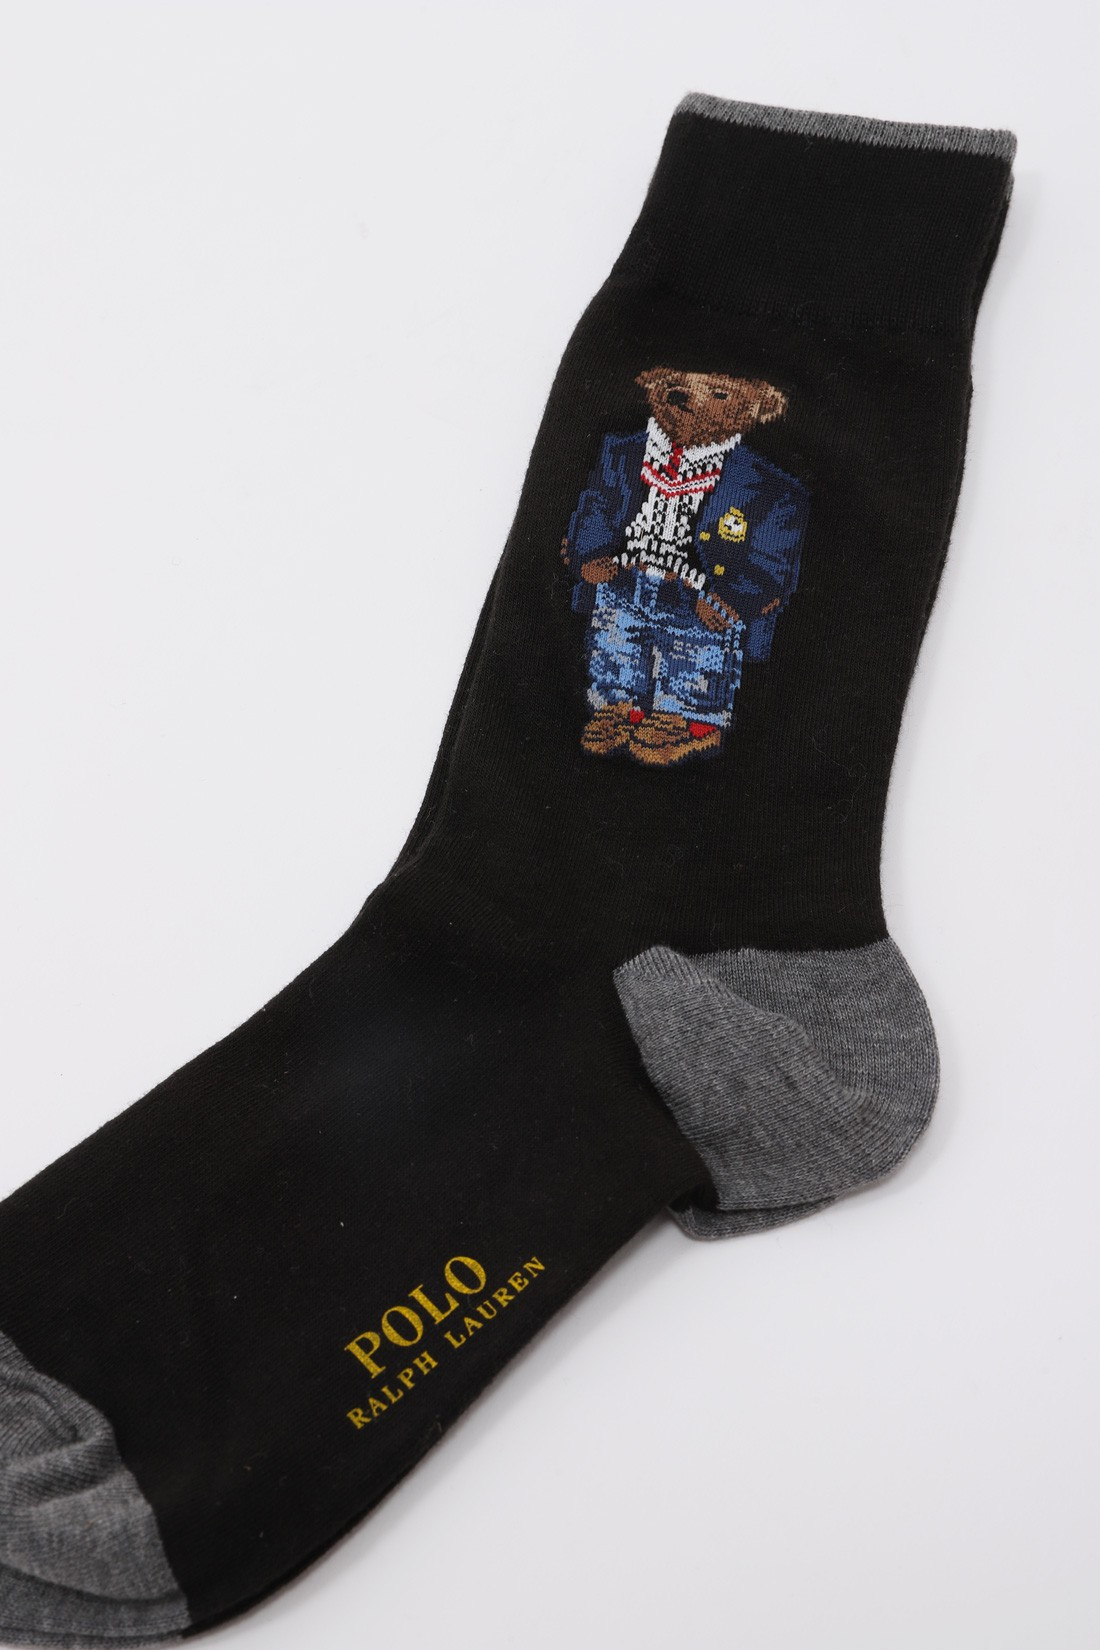 POLO RALPH LAUREN / Teddy bear socks crest Black